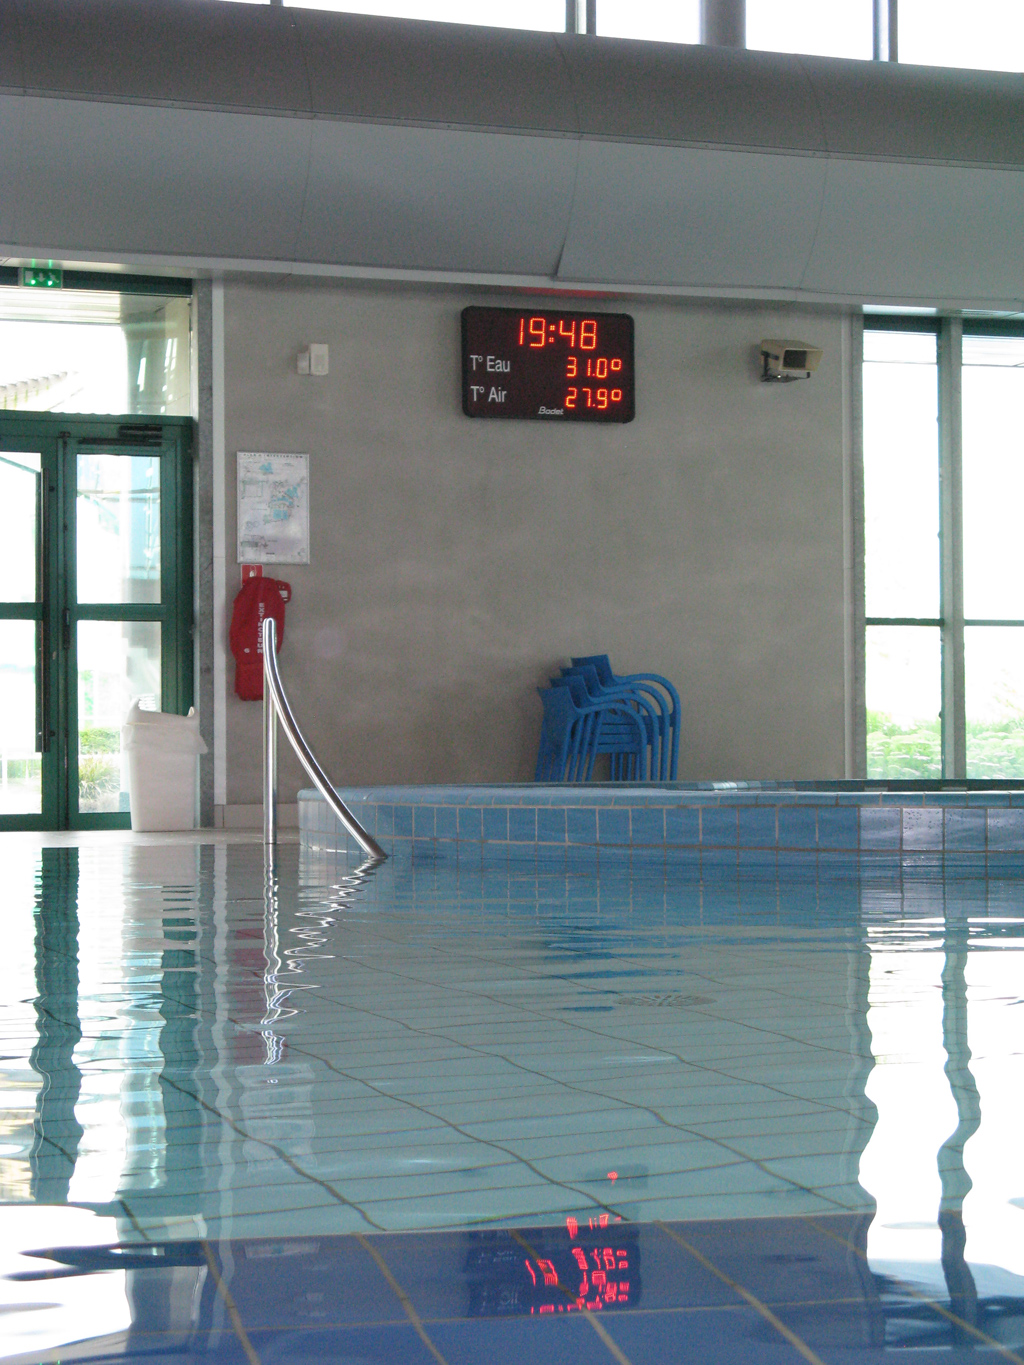 water-polo-scoreboards-glisseo-cholet-pool-2